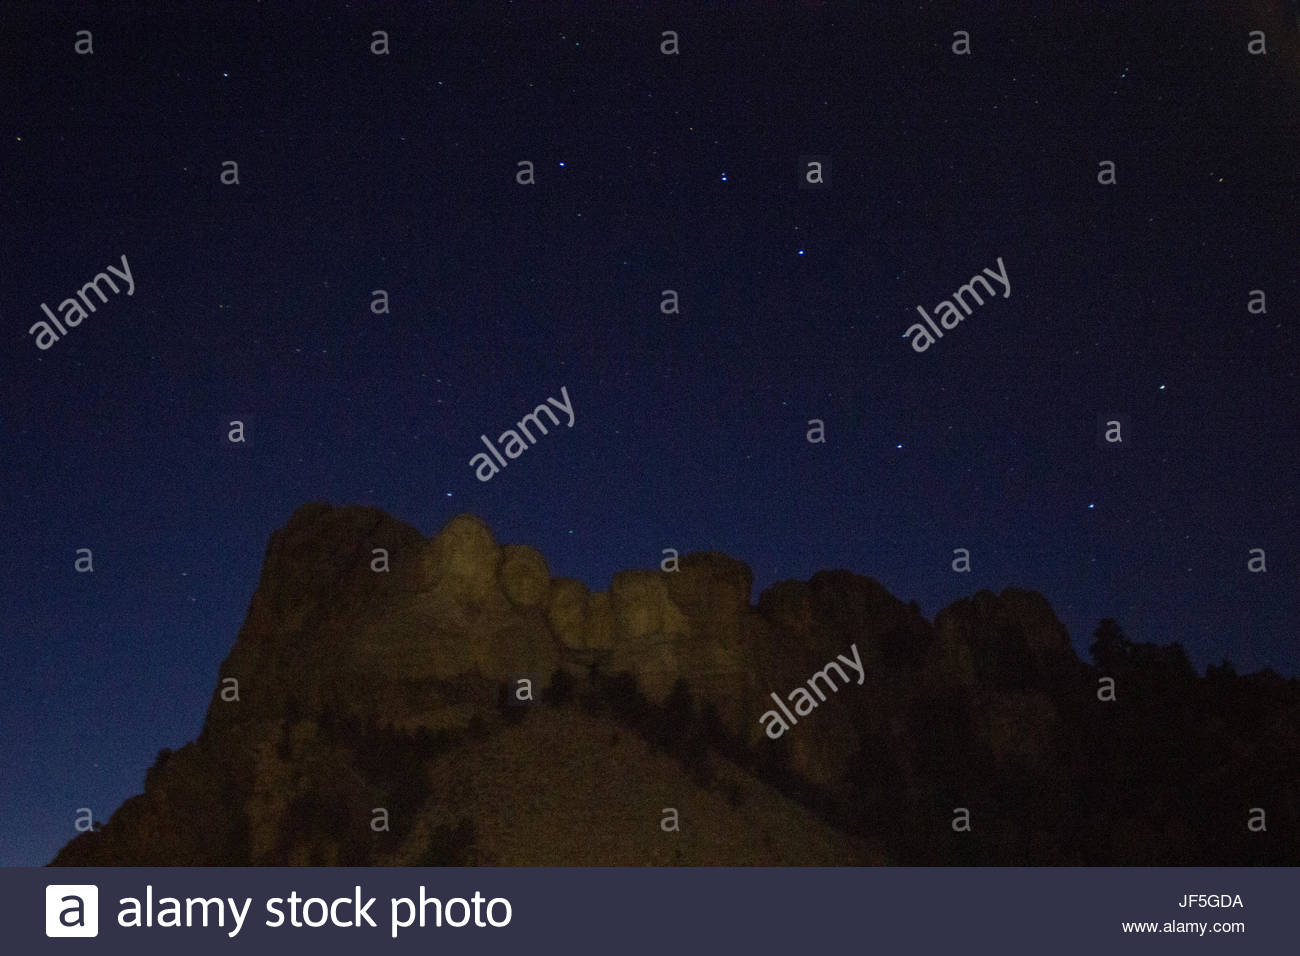 The Big Dipper shines above the iconic figures on Mount Rushmore. - Stock Image